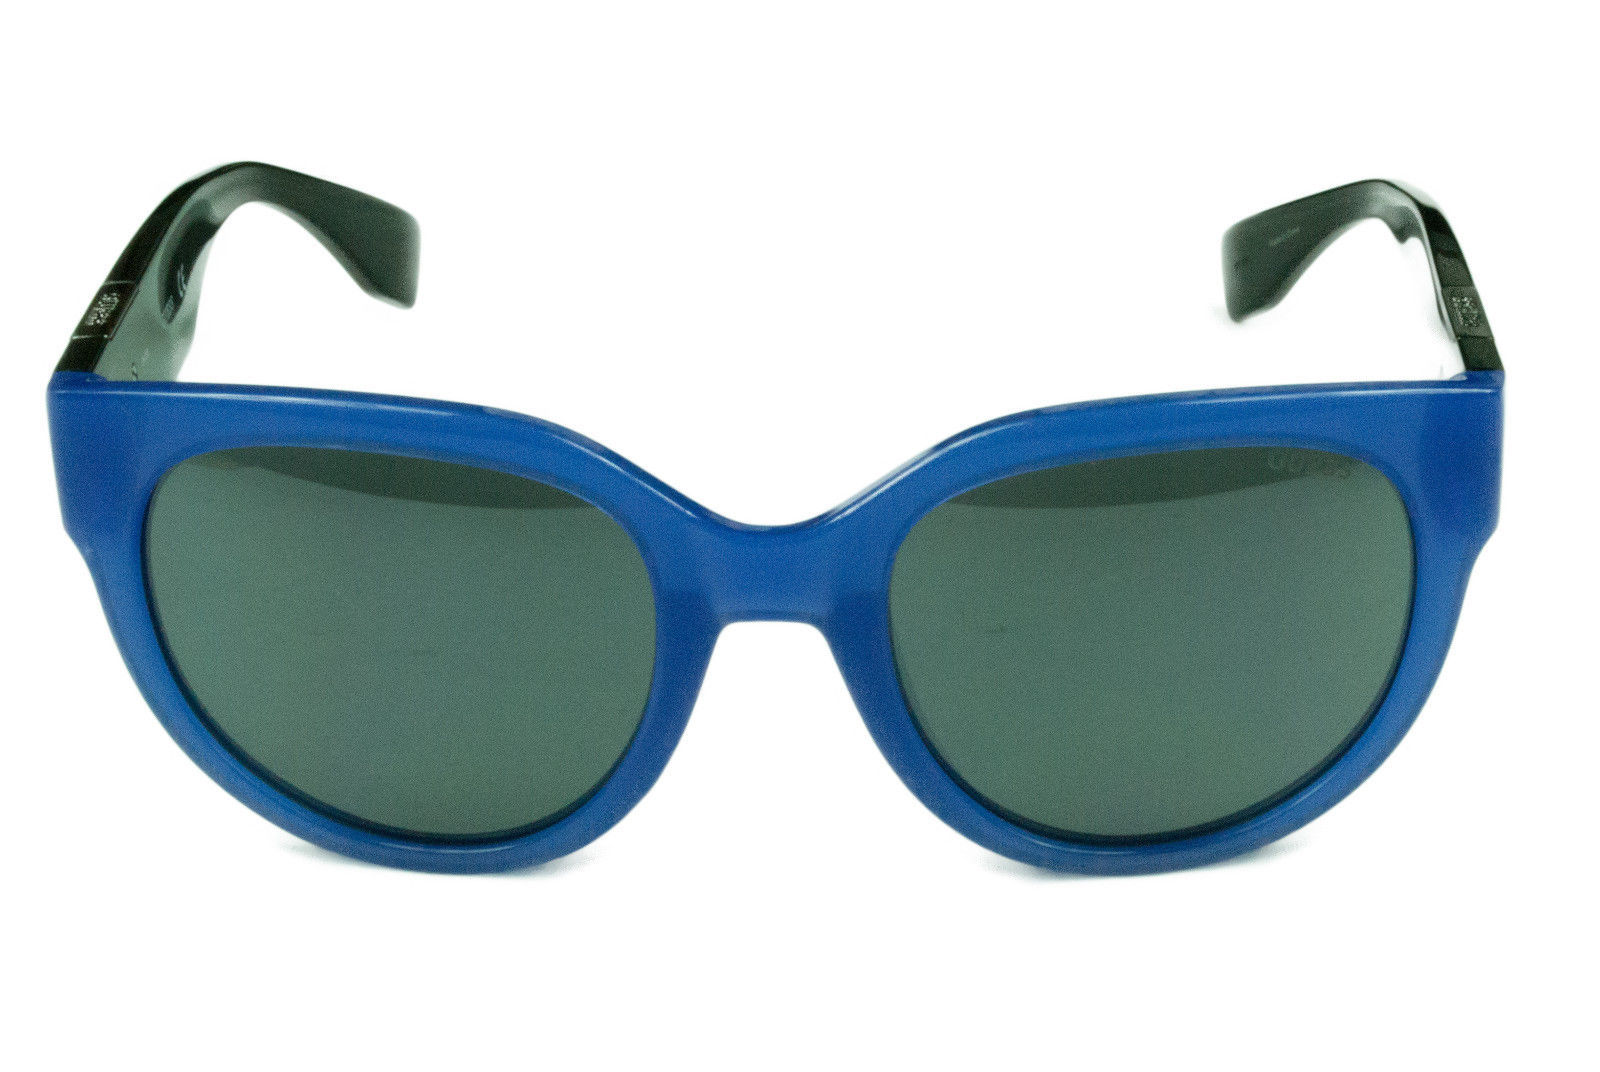 Brand New Guess Womens - GU7439 90A - Shiny Blue/Black w/ Smoke Lens Sunglasses